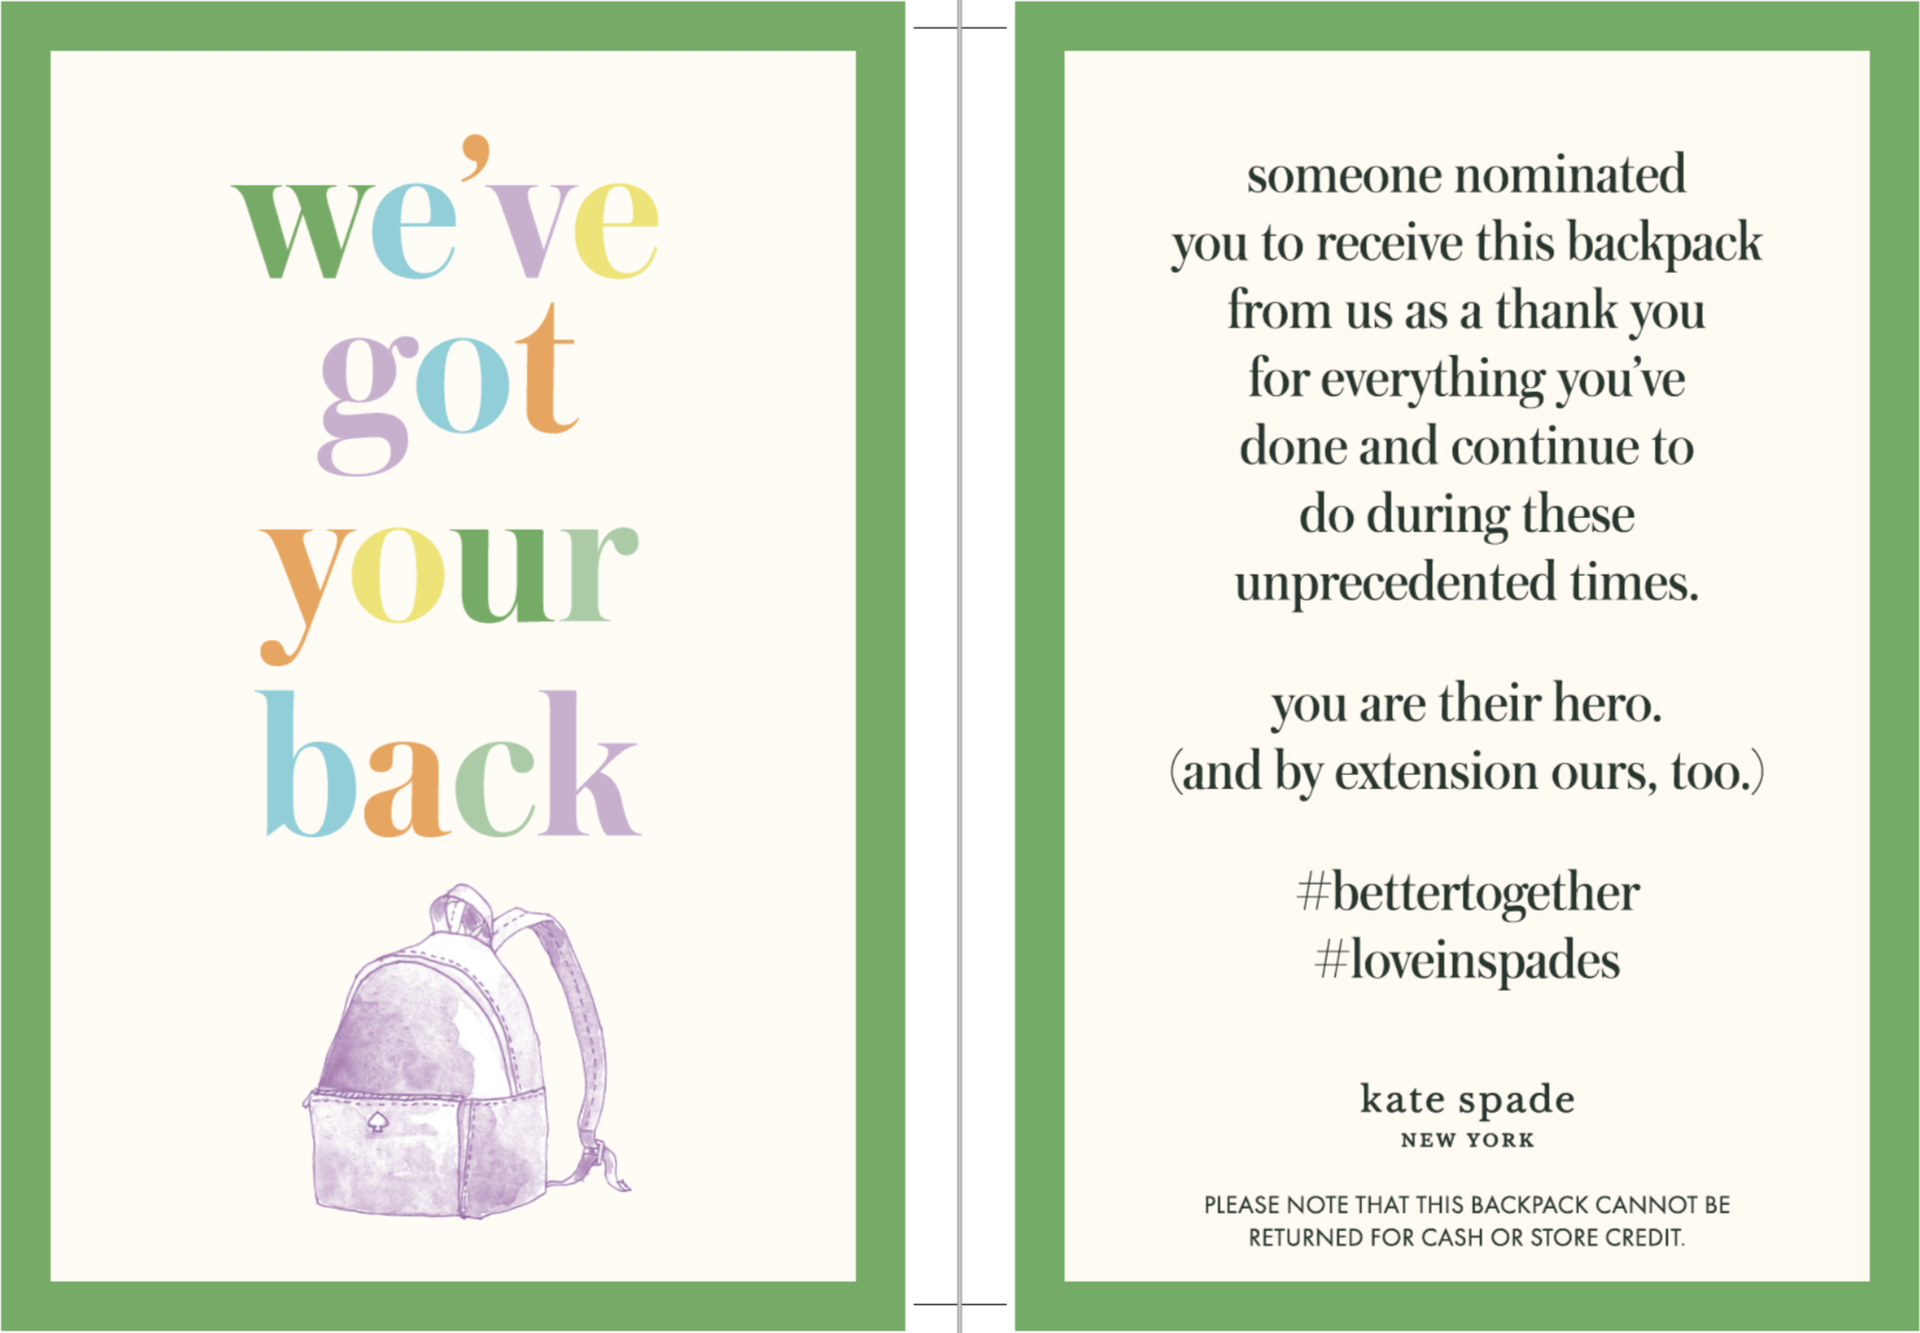 Kate Spade Gifts 5,000 Backpacks To Heroes On The Frontlines